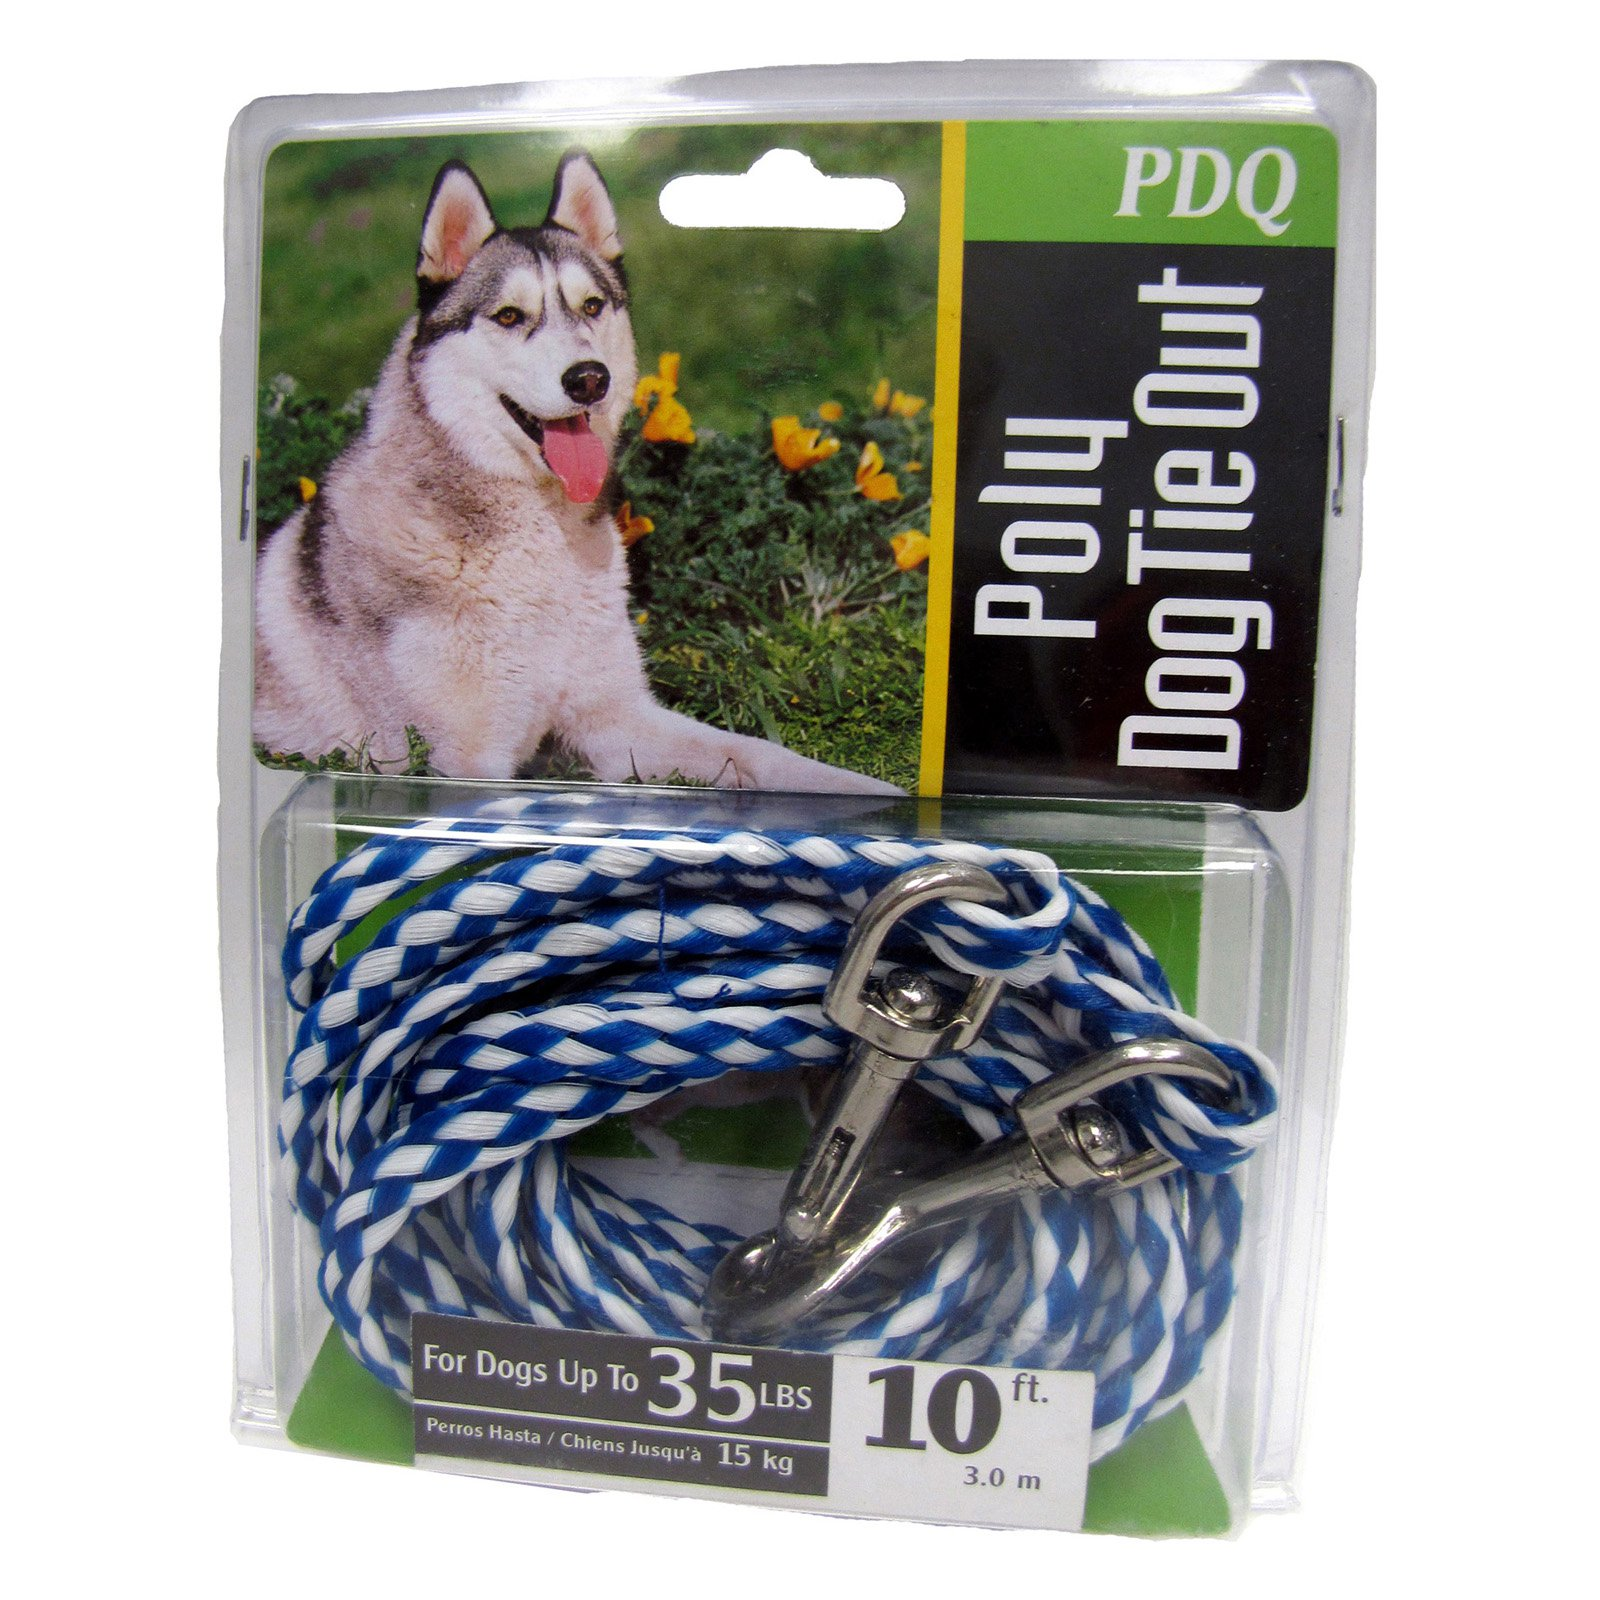 Boss Pet Q2410 000 99 10' Medium Dog PDQ Rope Tie-Out